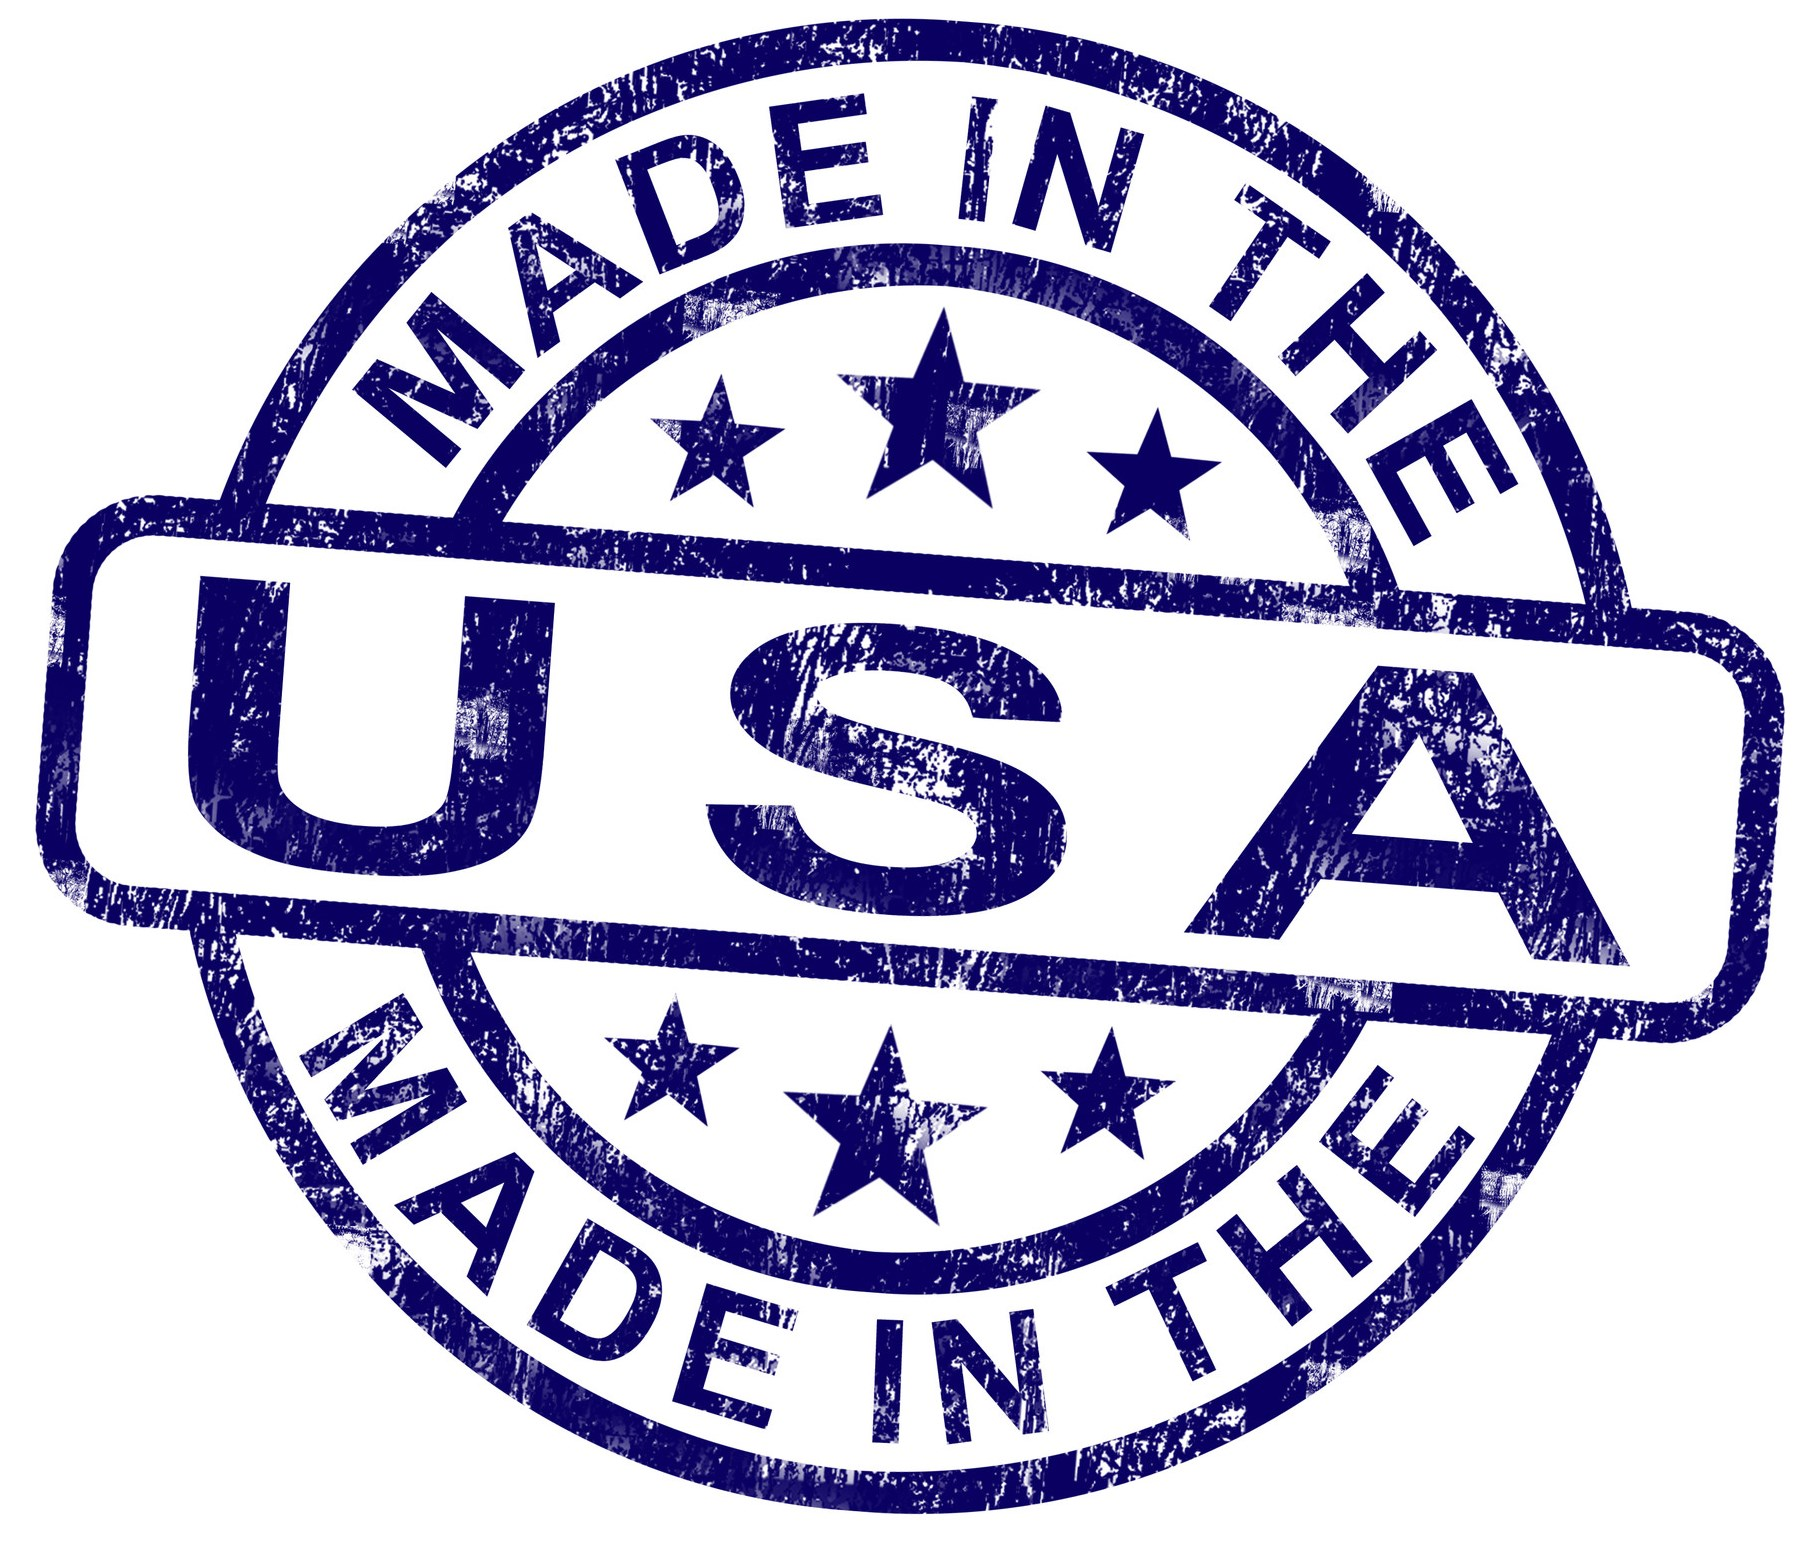 - Shade Squared products are proudly made in the USA!